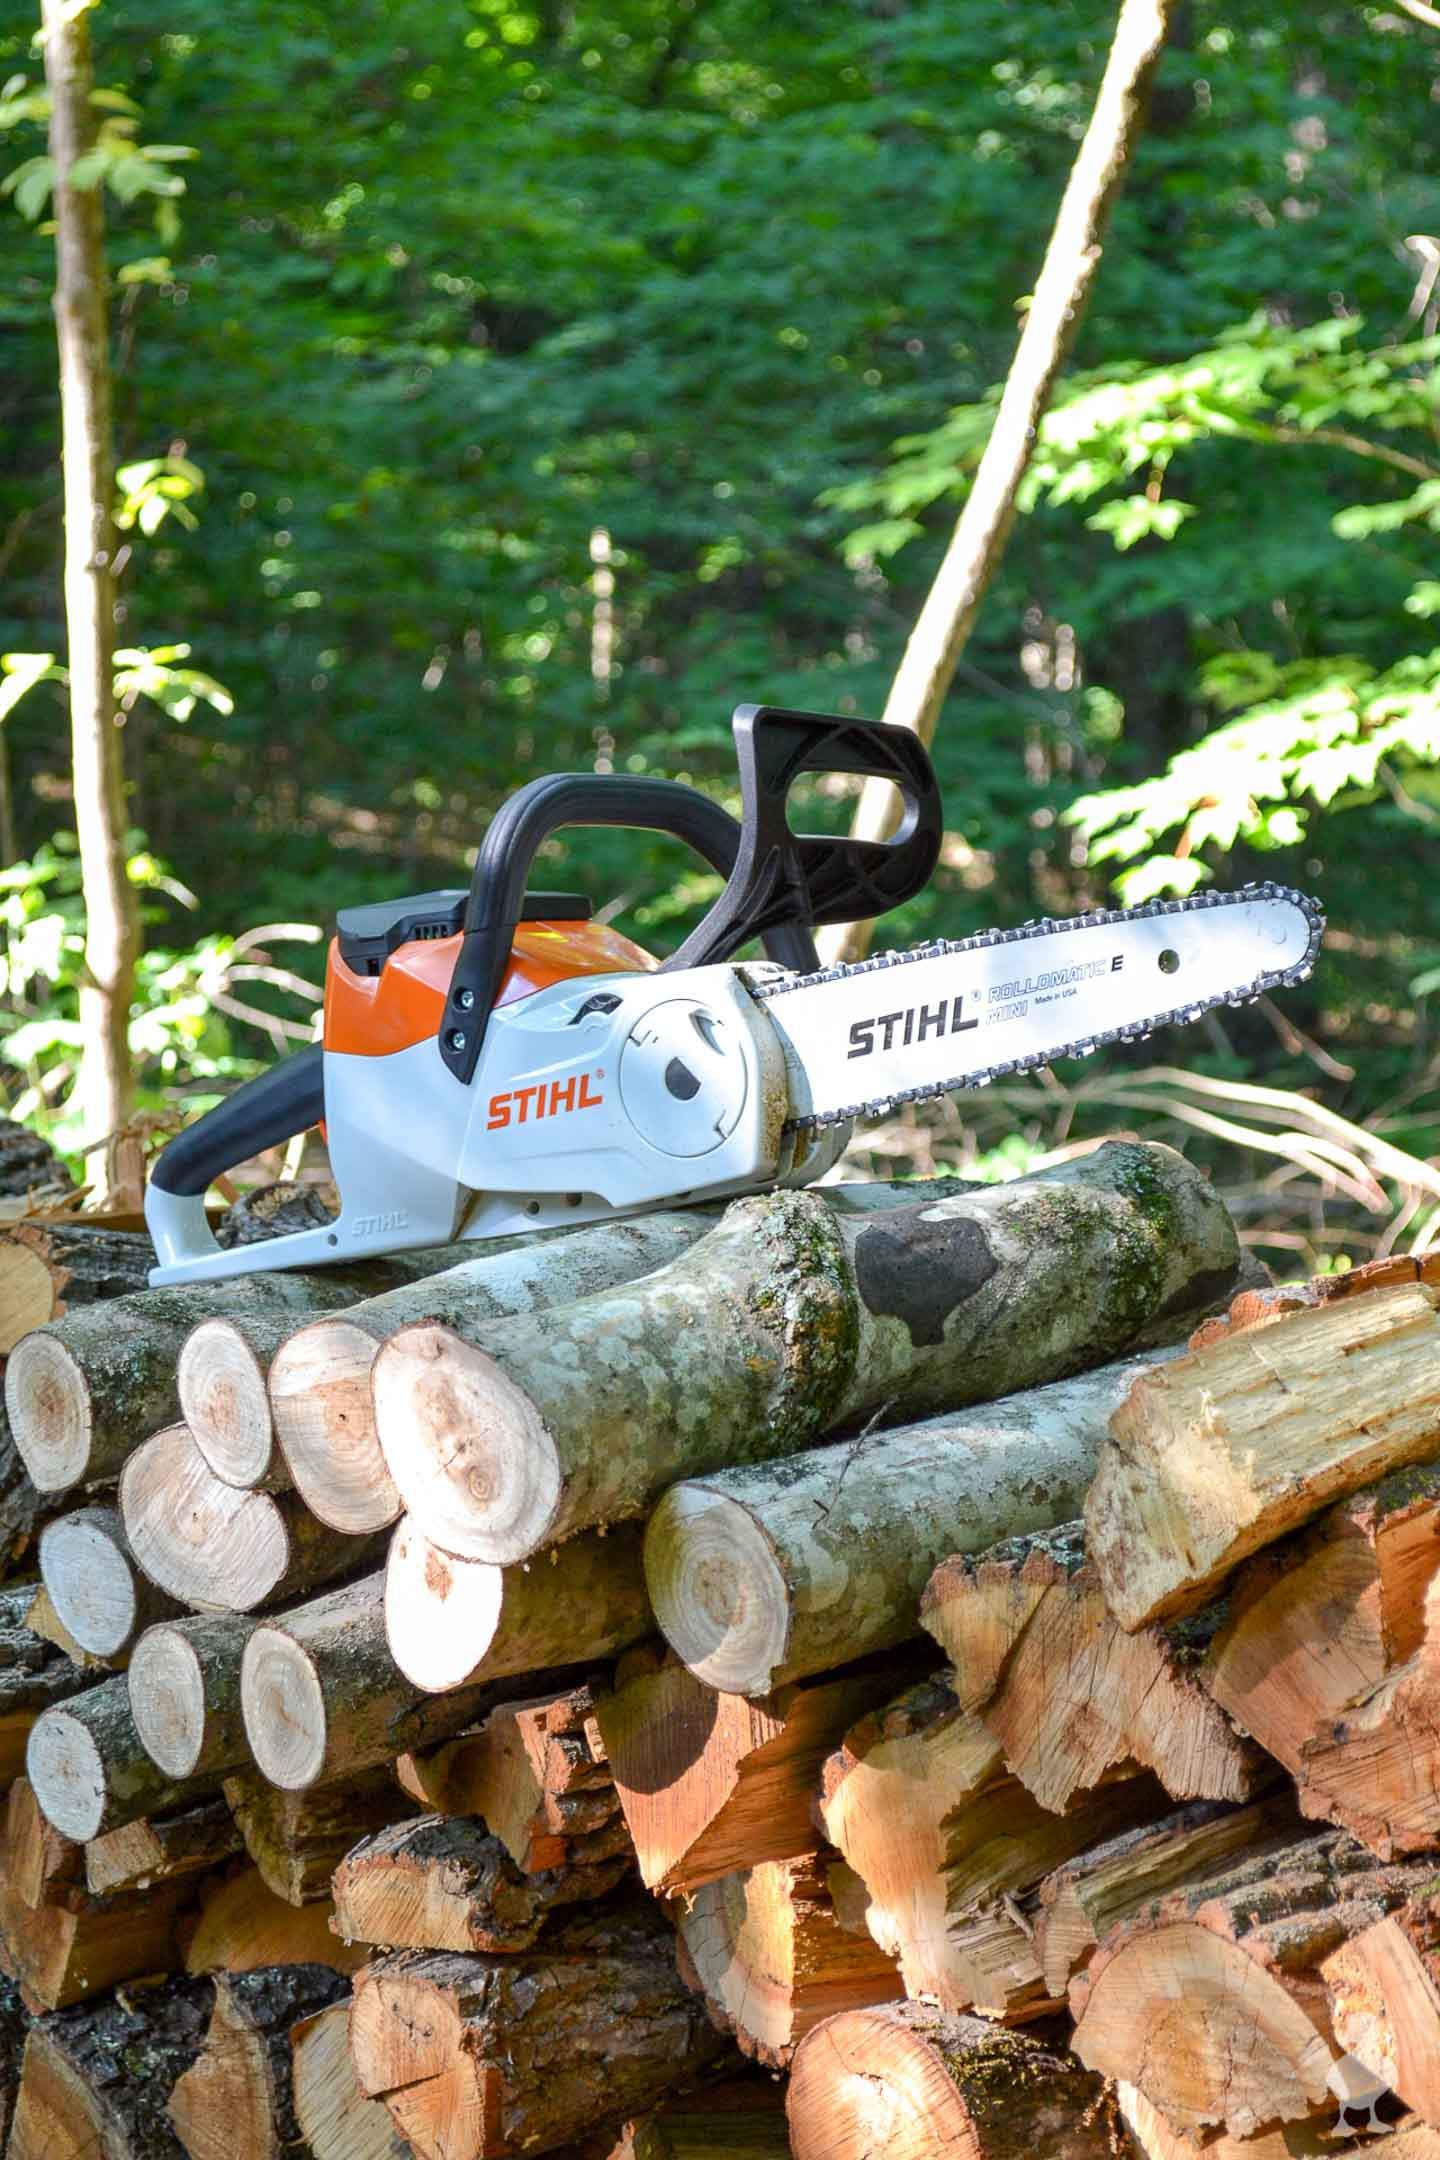 STIHL chainsaw on woodpile - 3